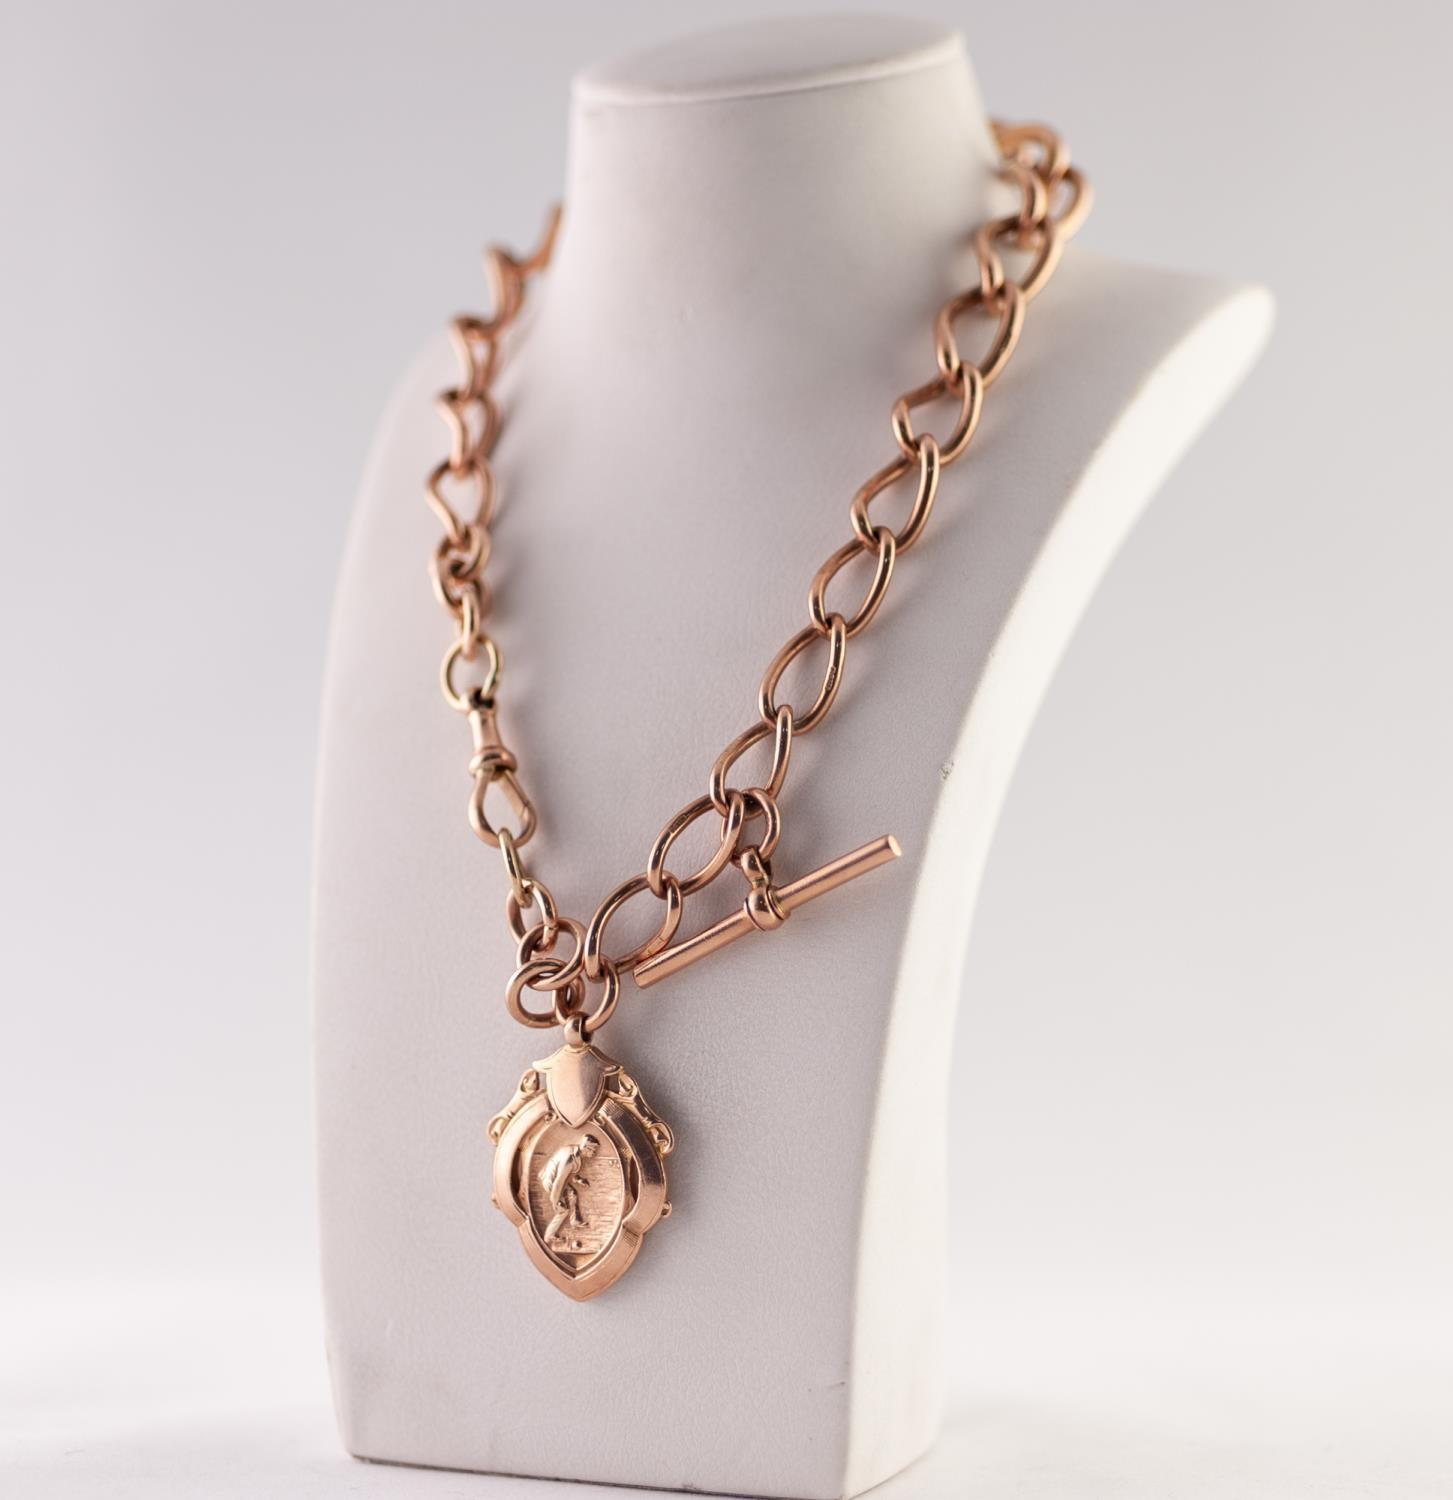 Lot 204 - 9ct GOLD LARGE GRADUATED CURB LINK ALBERT CHAIN, with T-bar, clip and 9ct gold sports medallion,